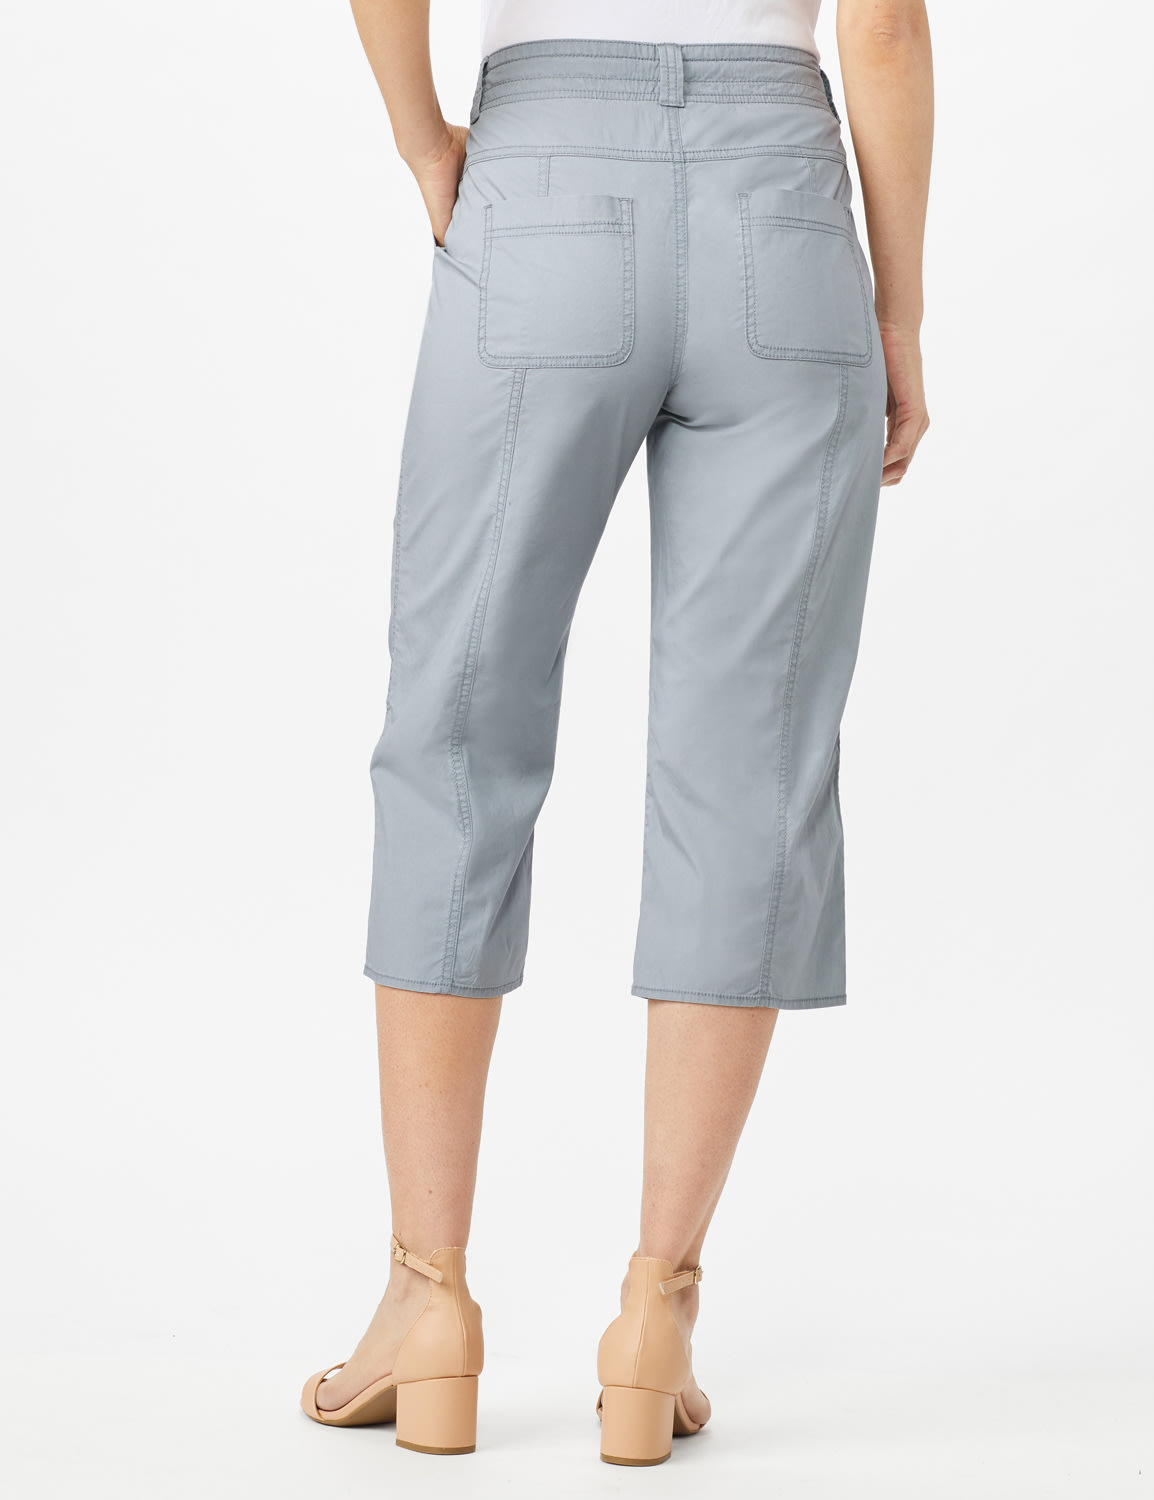 Utility Capri Pants with Drawstring Waist - Shy Grey - Back